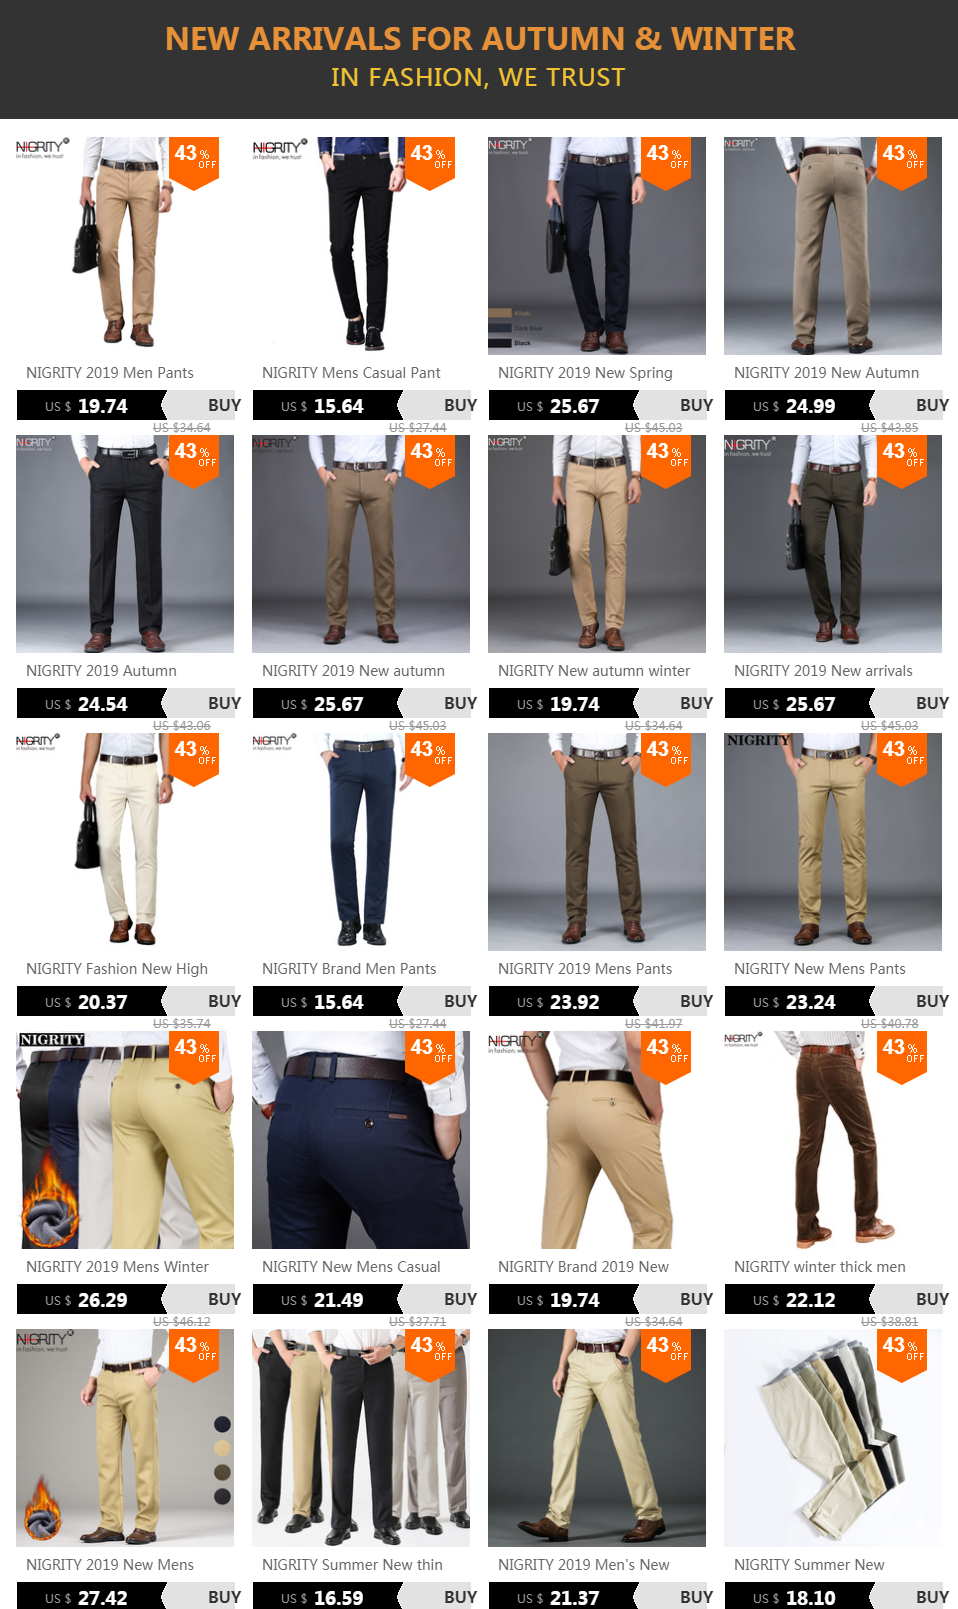 H2649a2c36a0e4e488ce2789e9b706dc7W NIGRITY 2019 Men Pants Casual High Quality Classics Fashion Male Trousers Business Formal Full Length Mens Pants